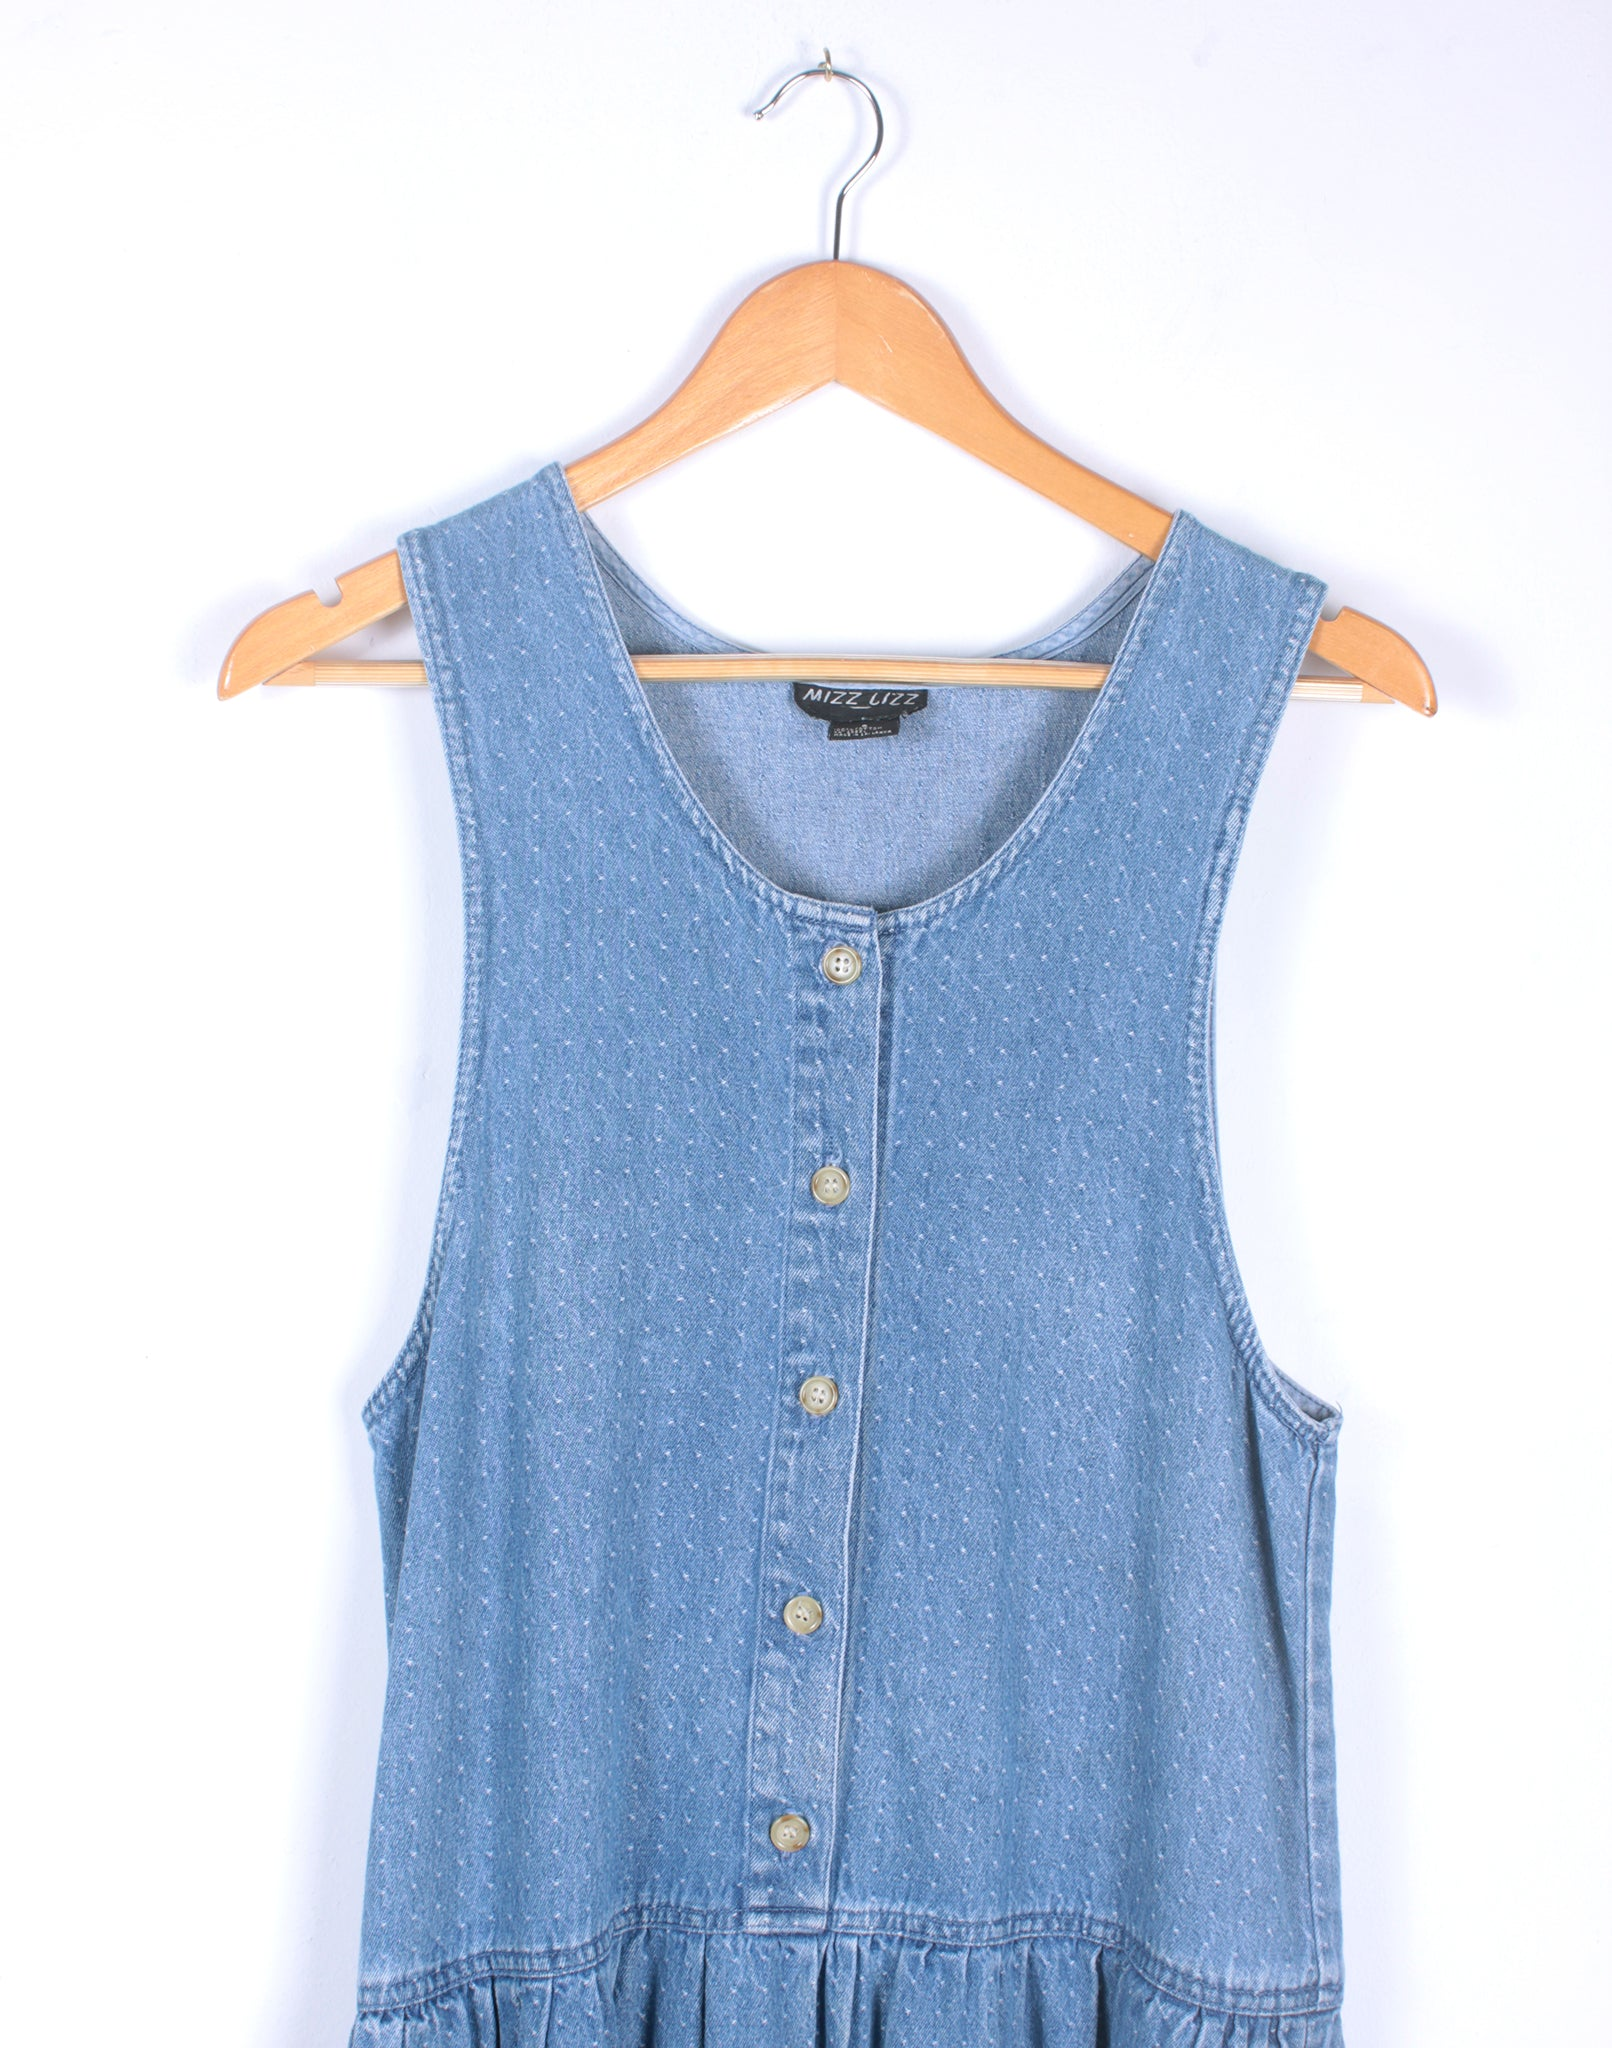 Vintage 80's Denim Drop Waist Dress